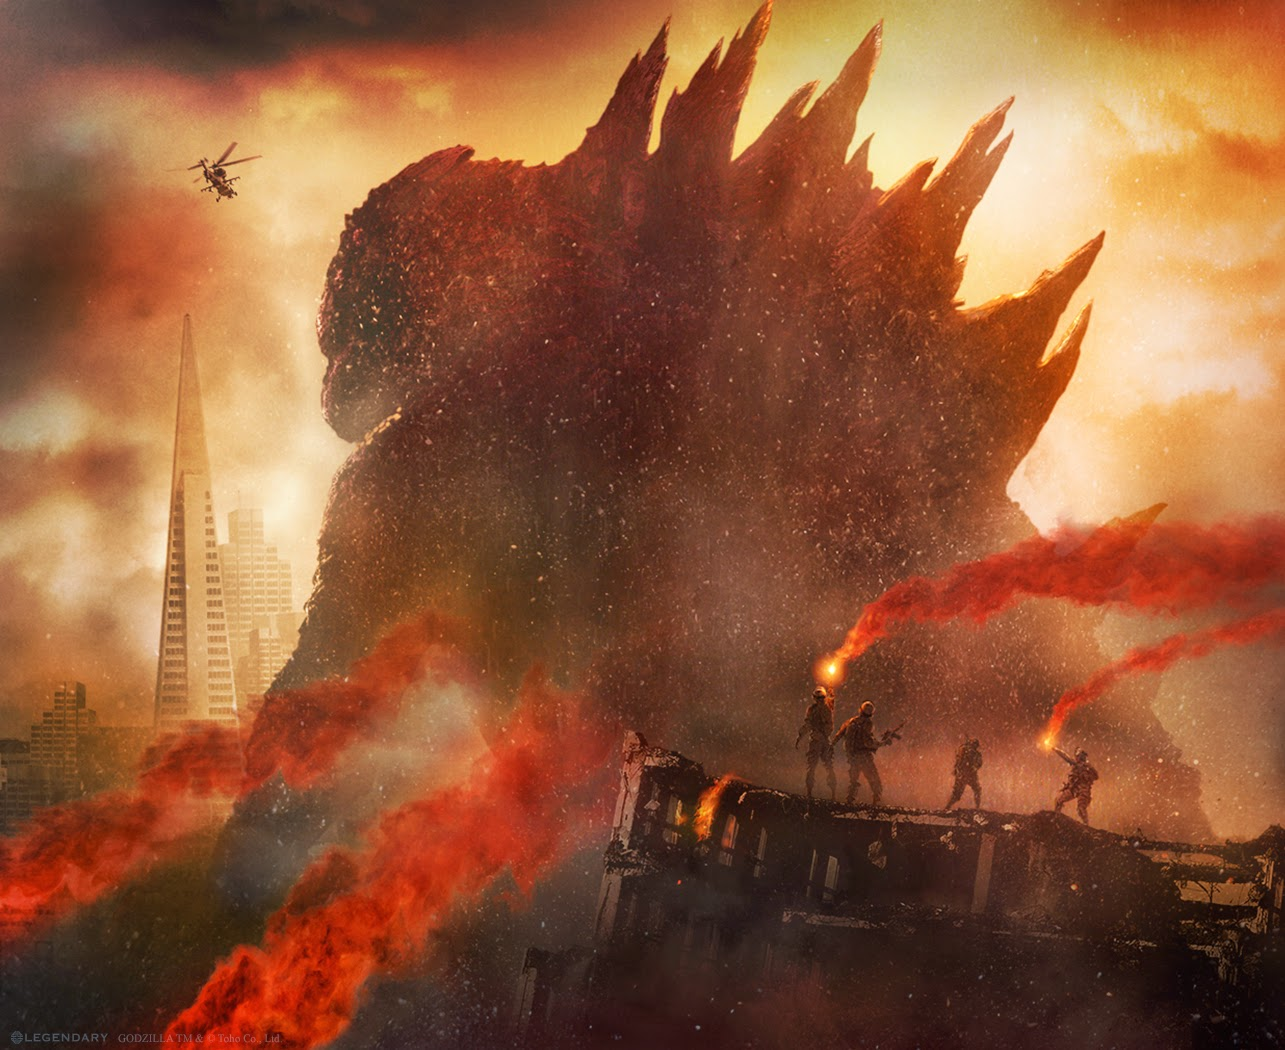 Film Godzilla vs MUTO 2014 Video Foto Terbaru Duel Monster Raksasa